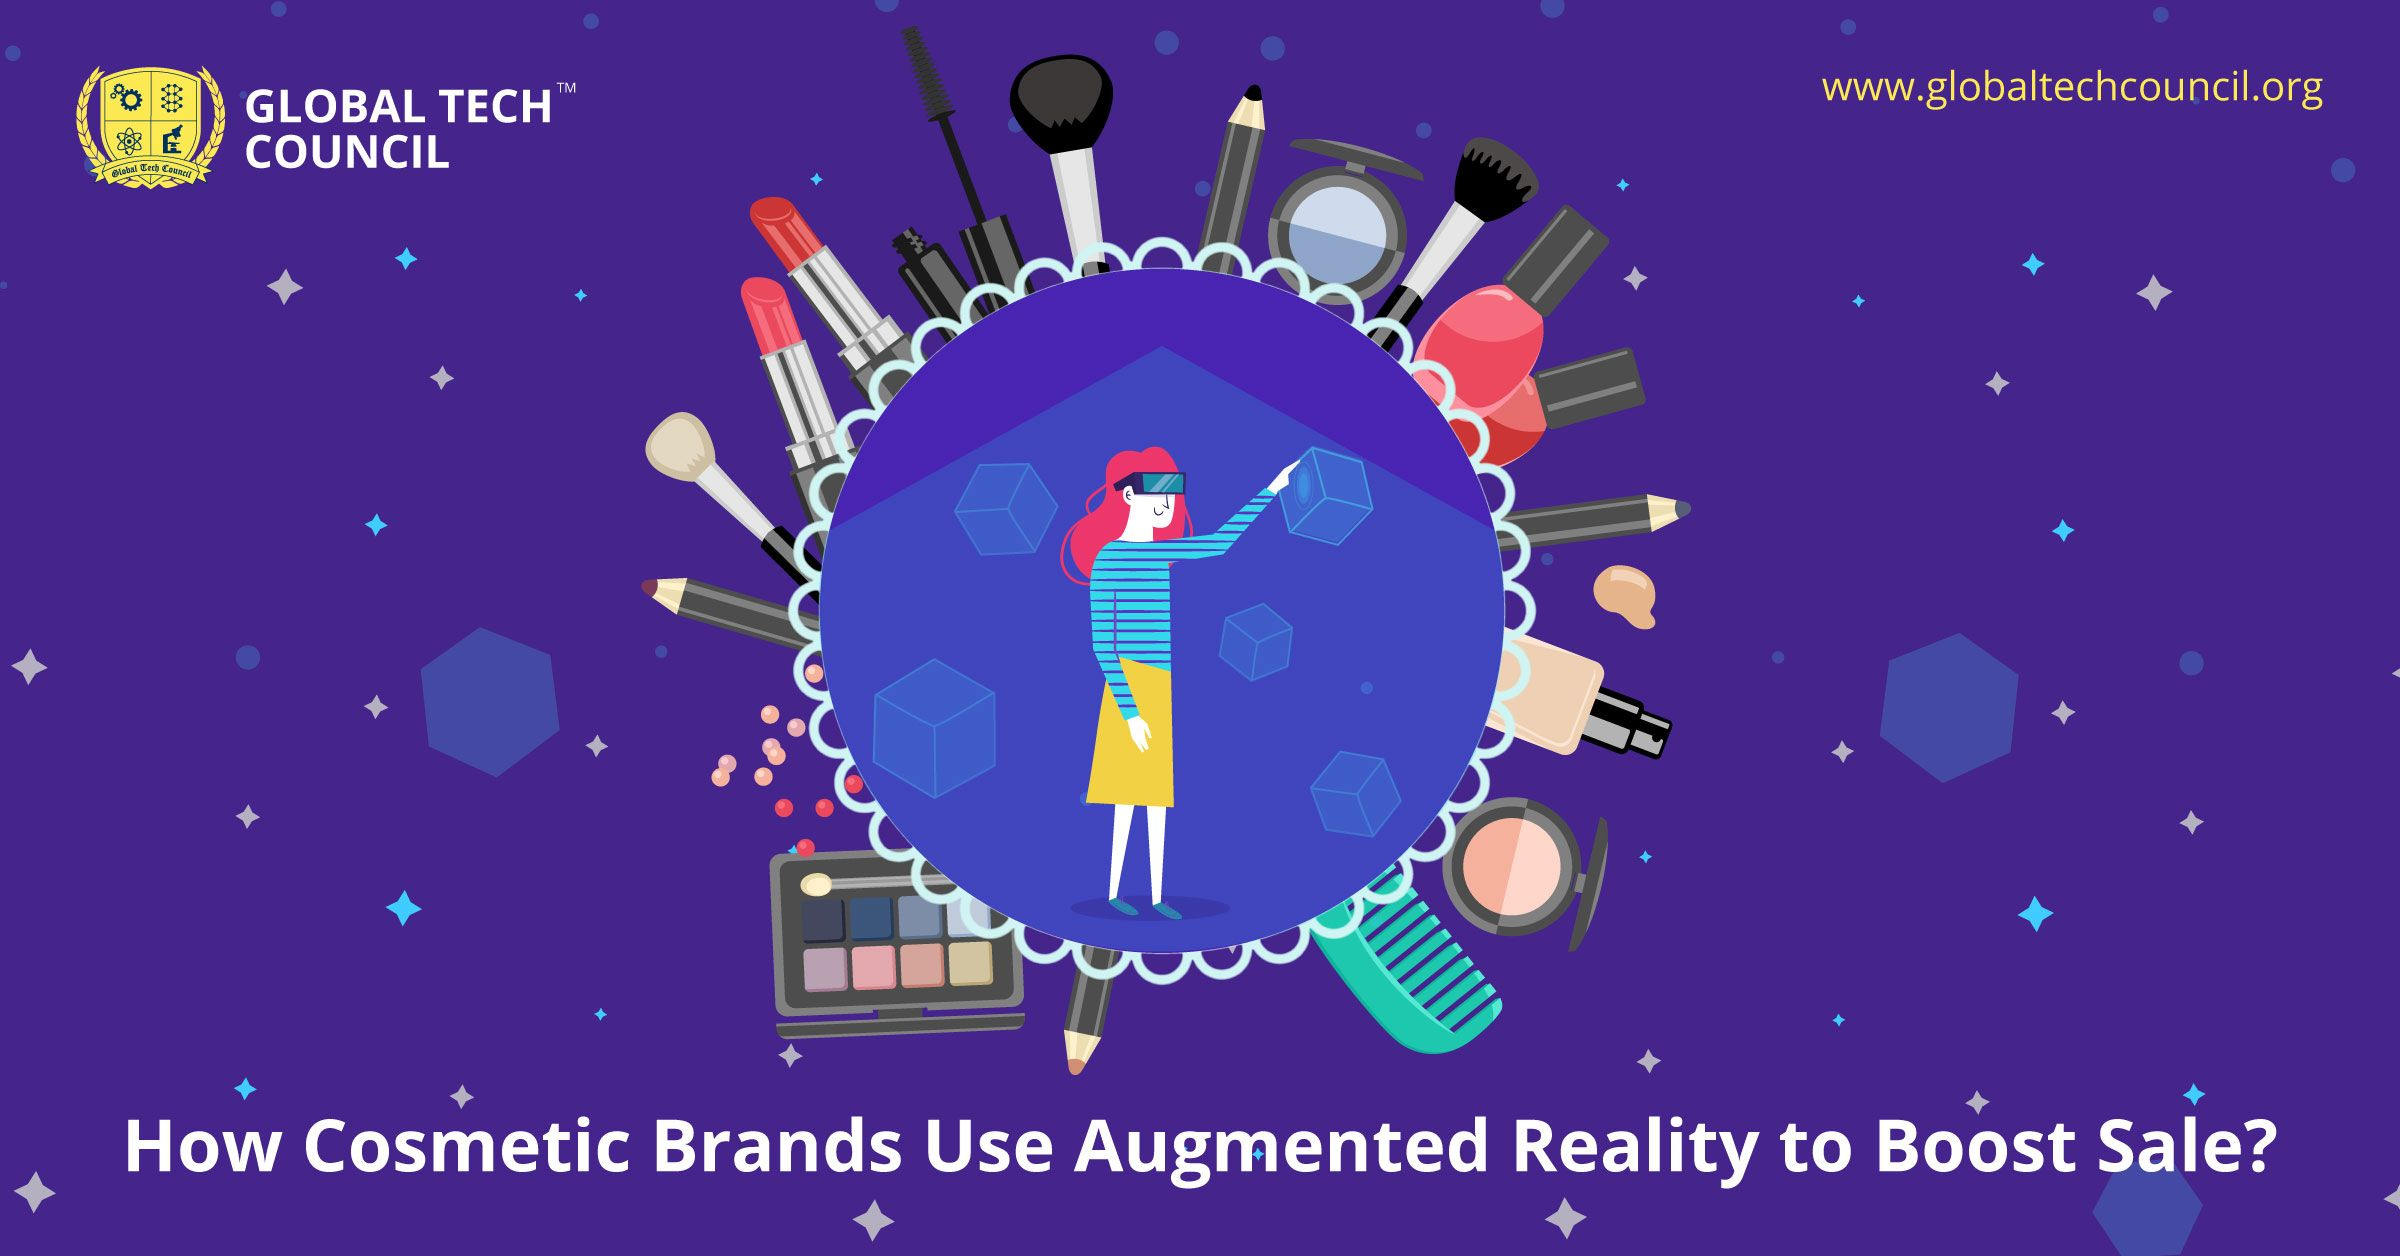 From AR sets to browsers and videos, every industry today